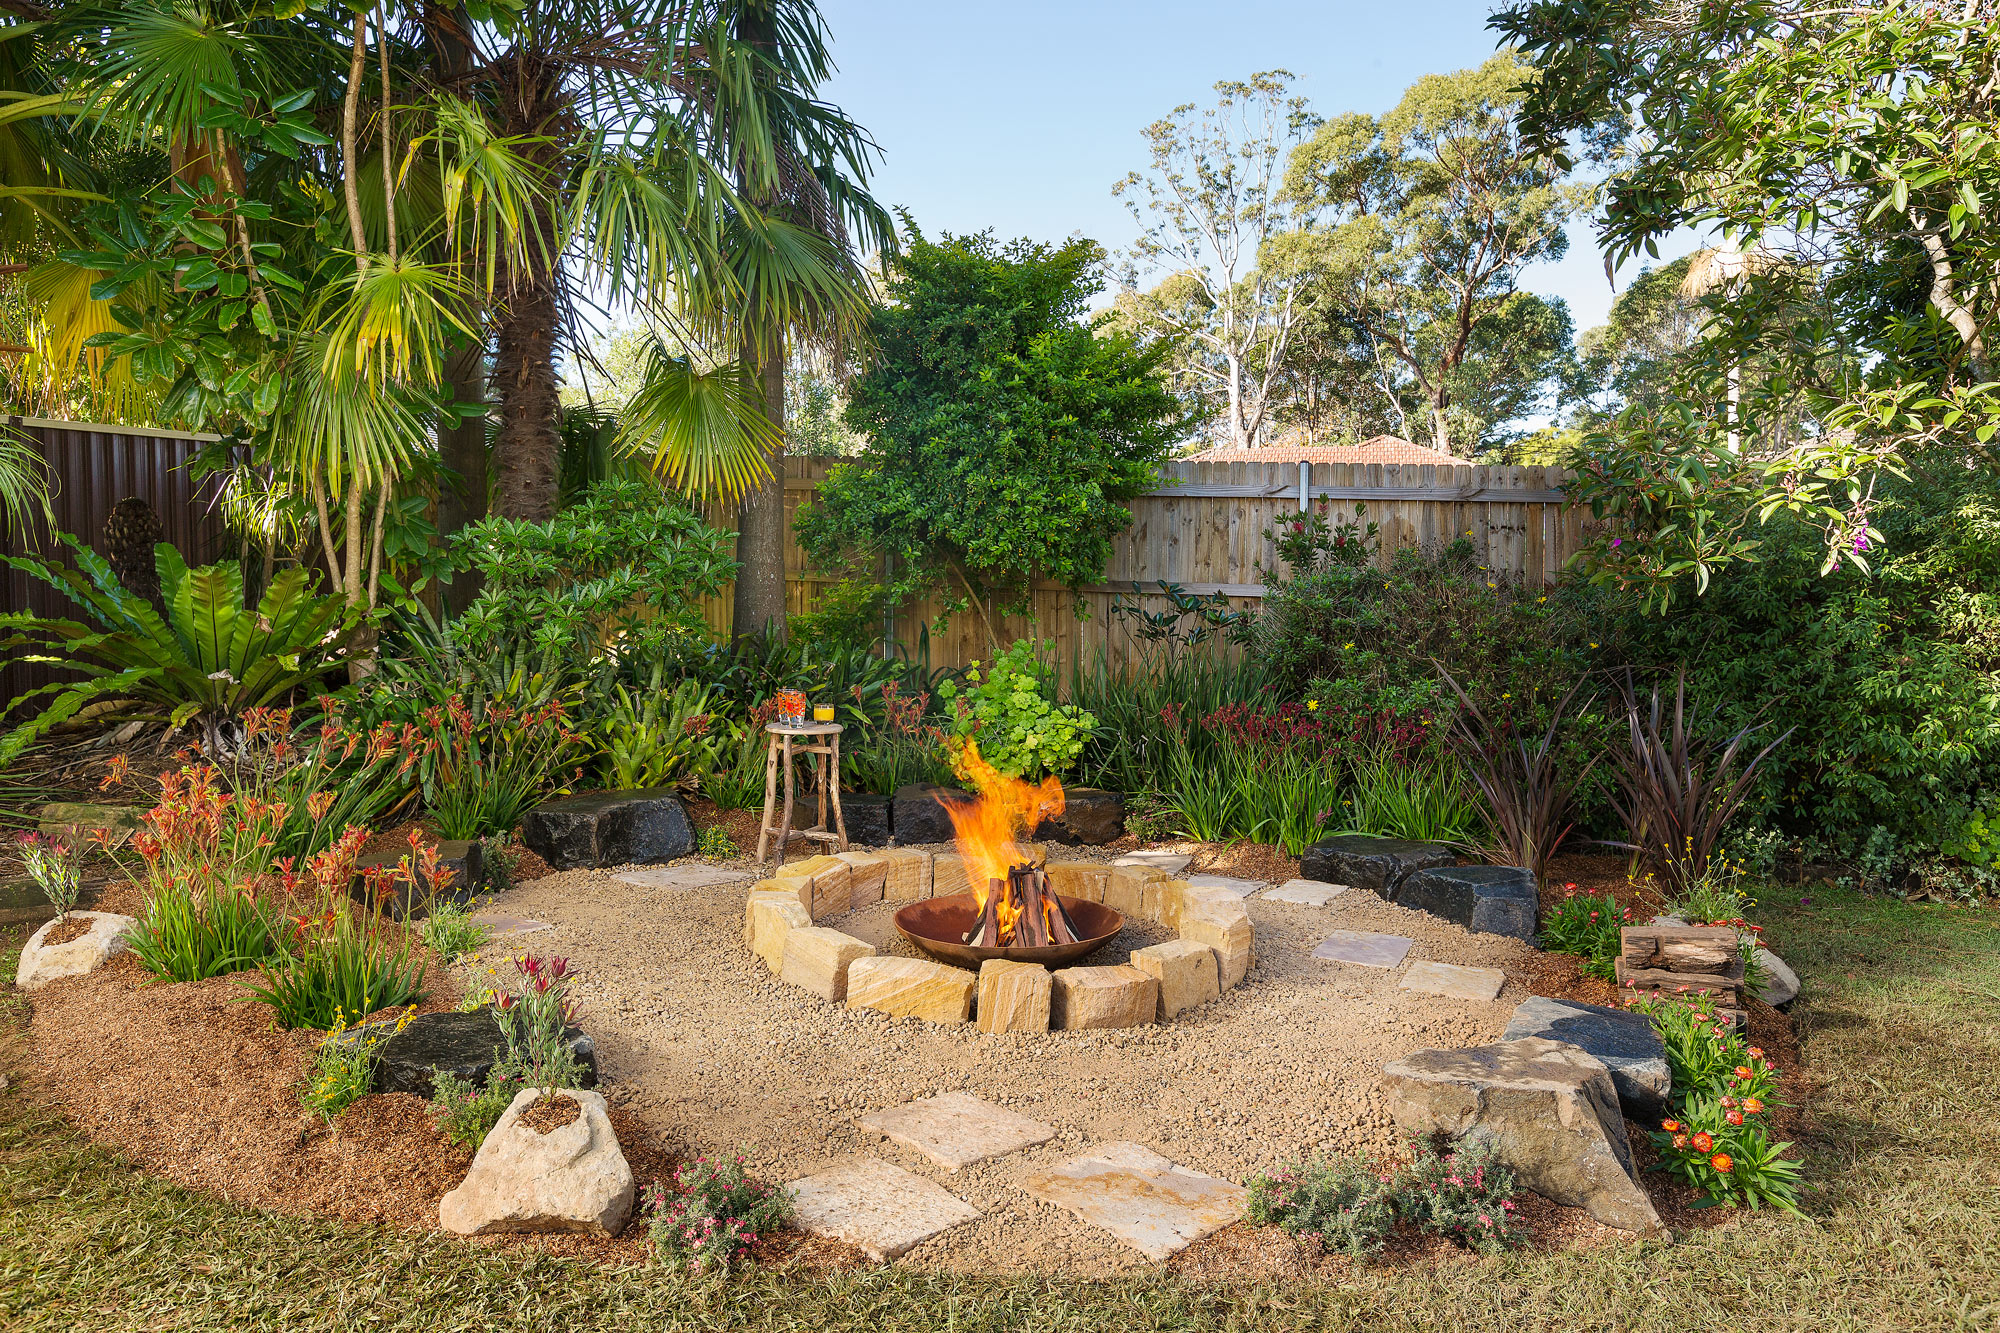 How To Make A Fire Pit Diy Gardening Craft Recipes